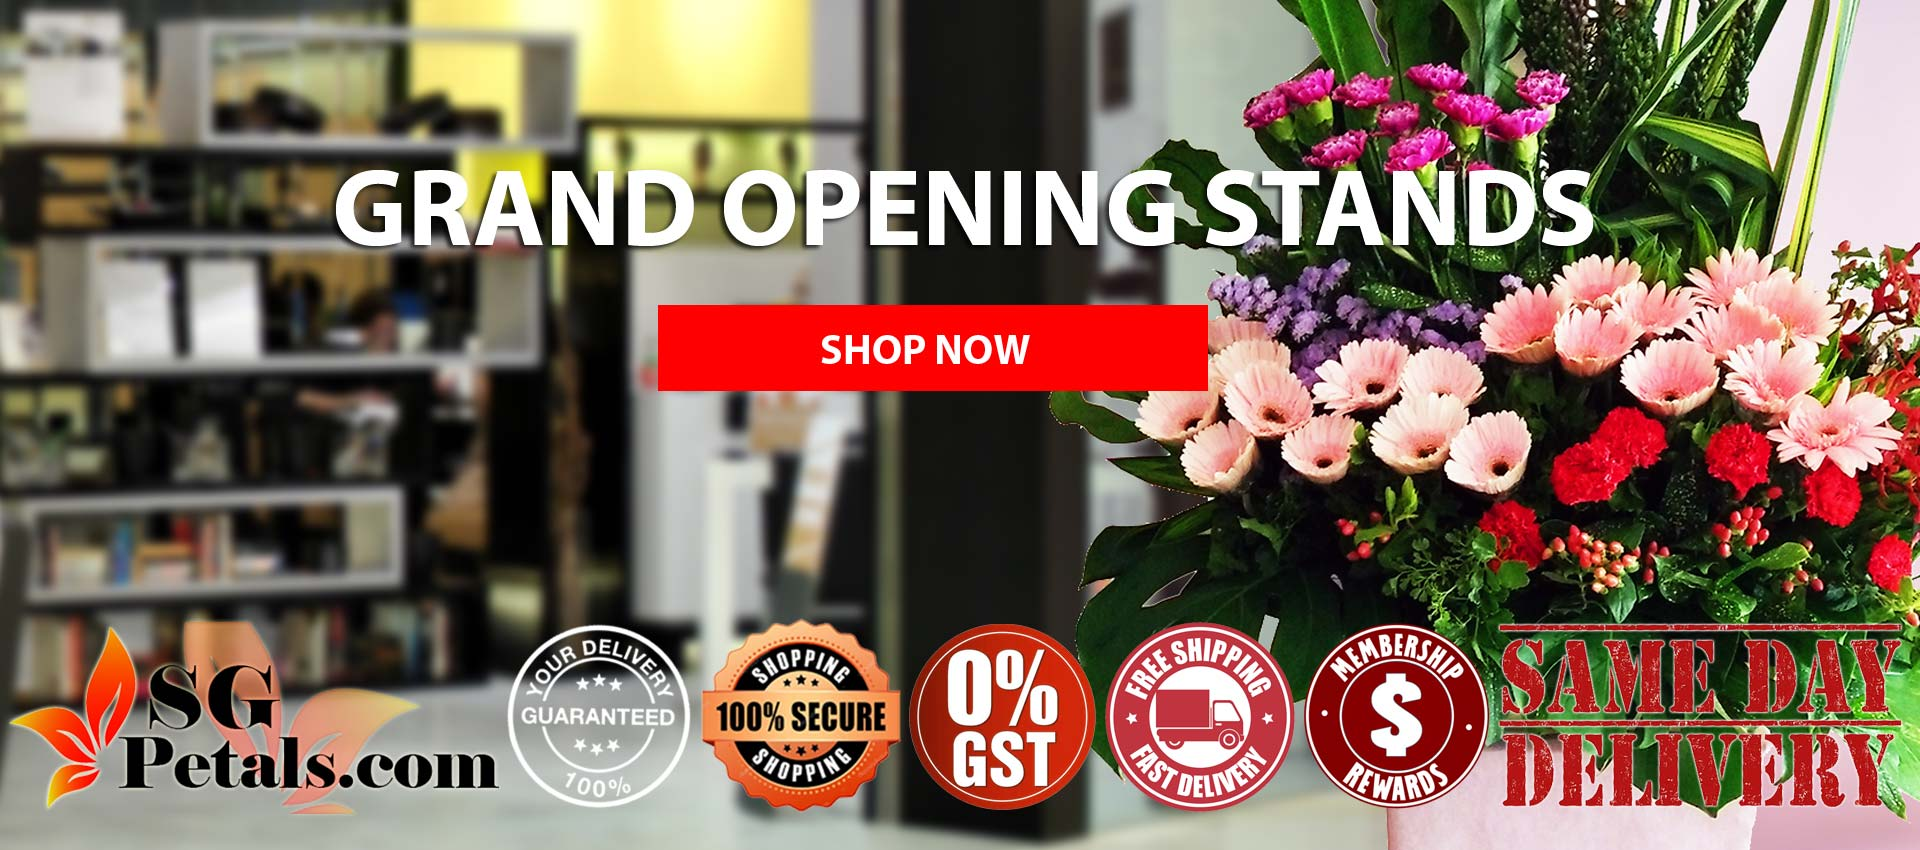 Grand Opening Stands in Singapore | Sgpetals.com